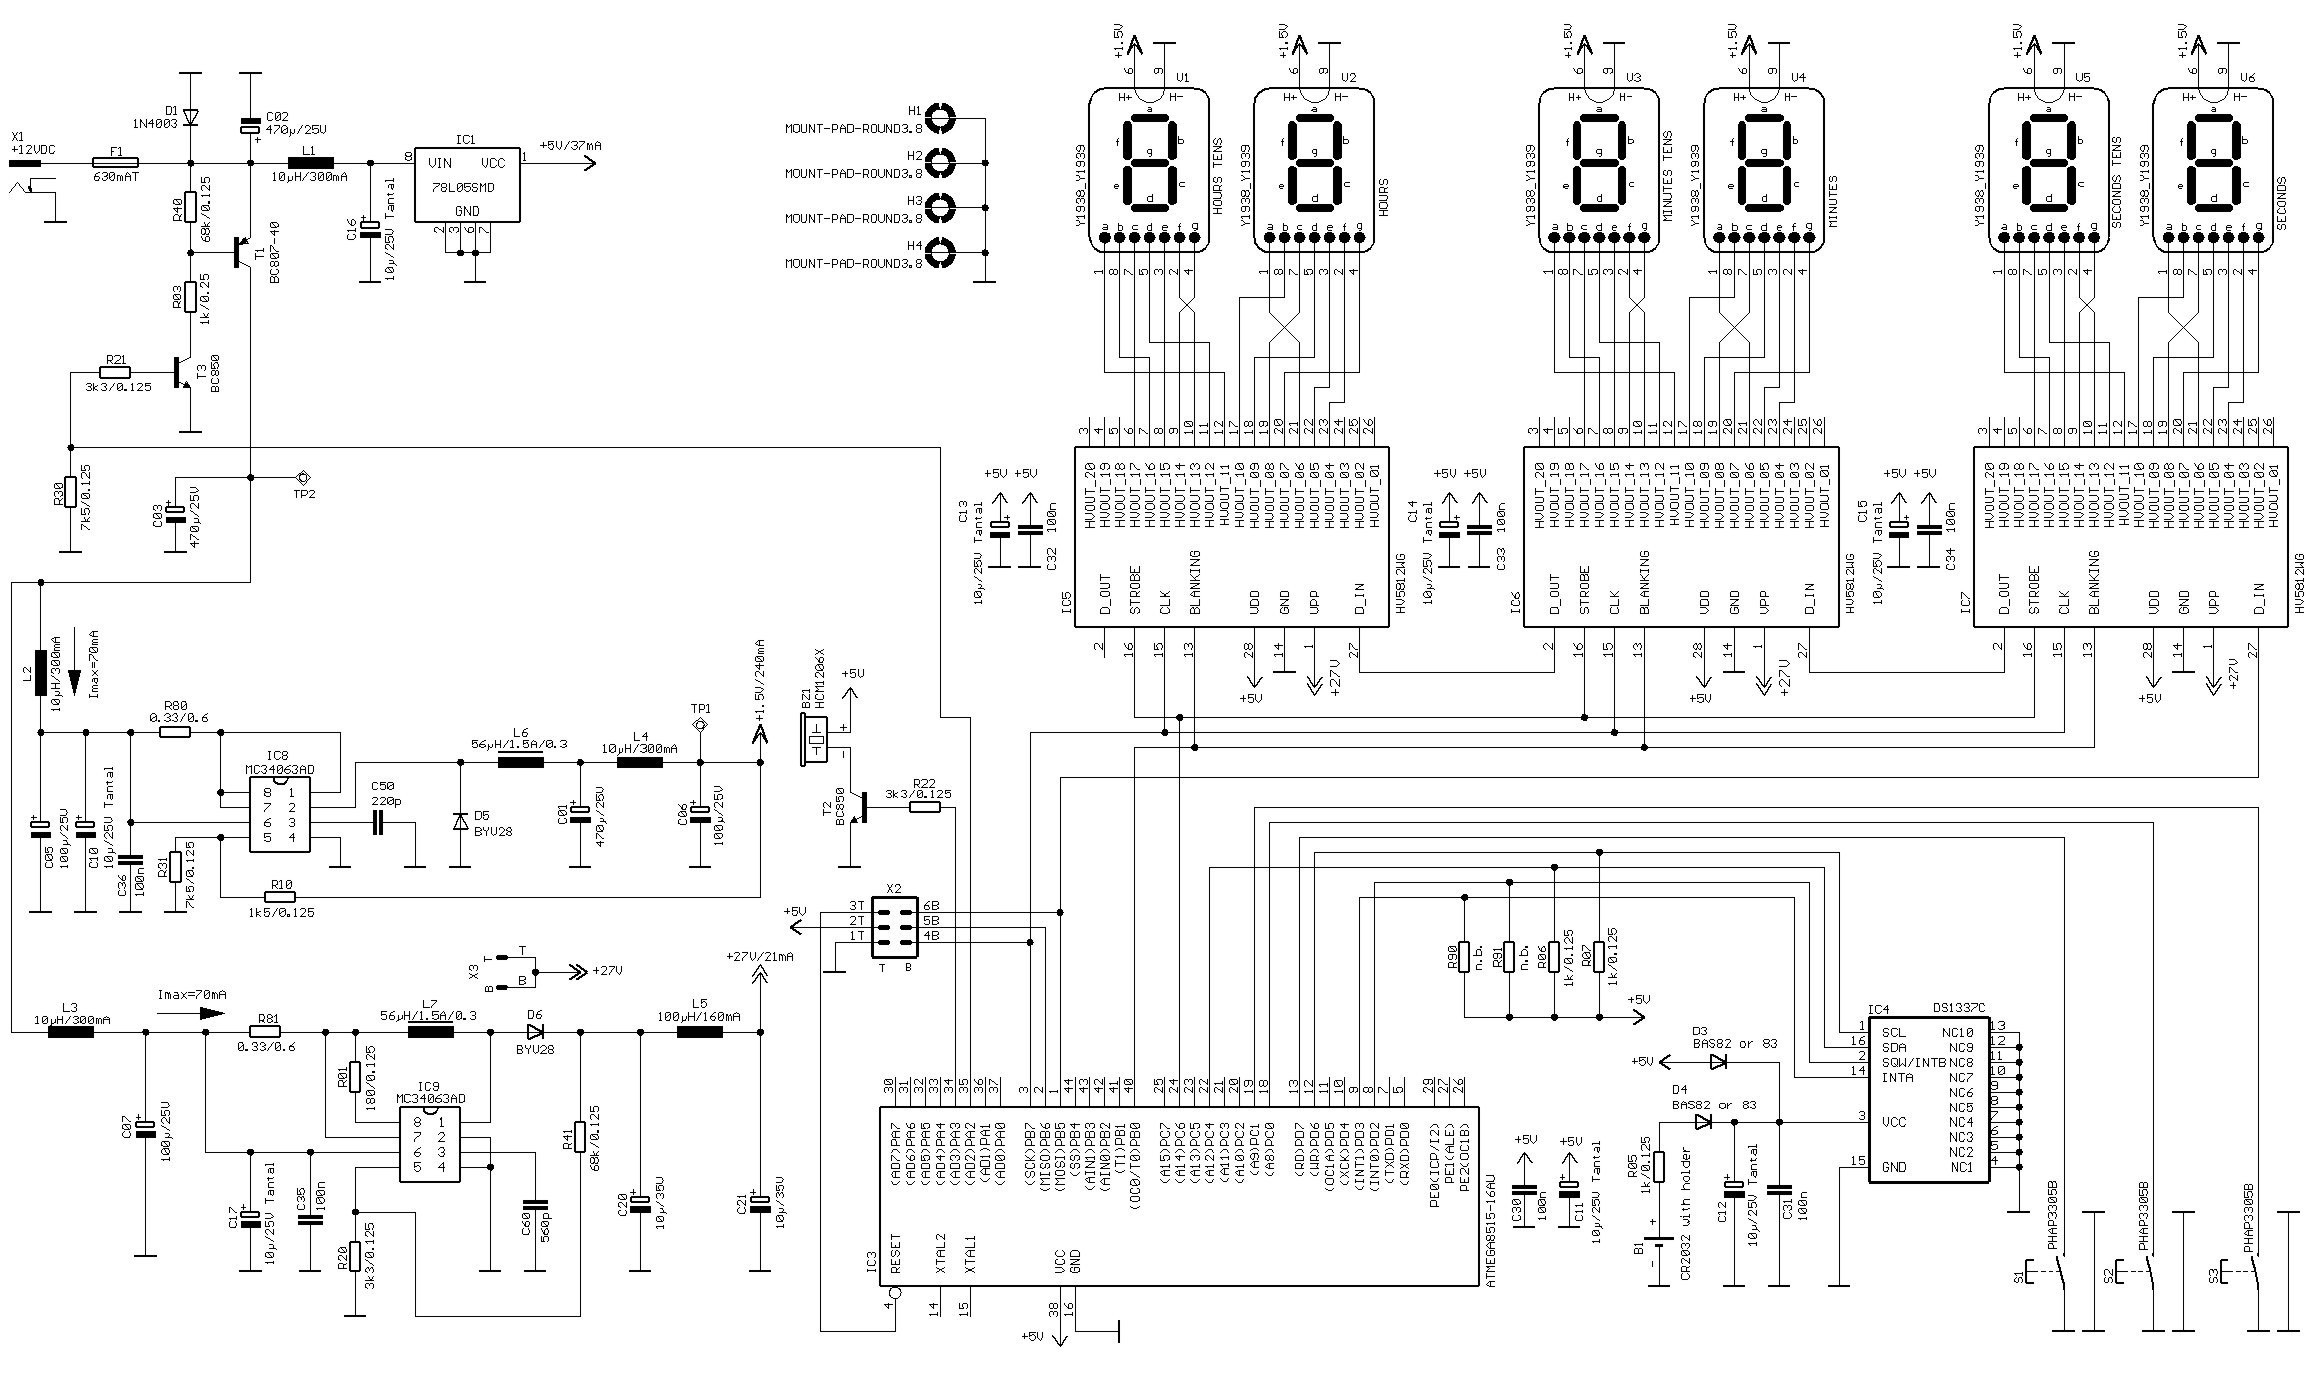 danfoss motor starter wiring diagram house electrical diagrams abb ach550 new image